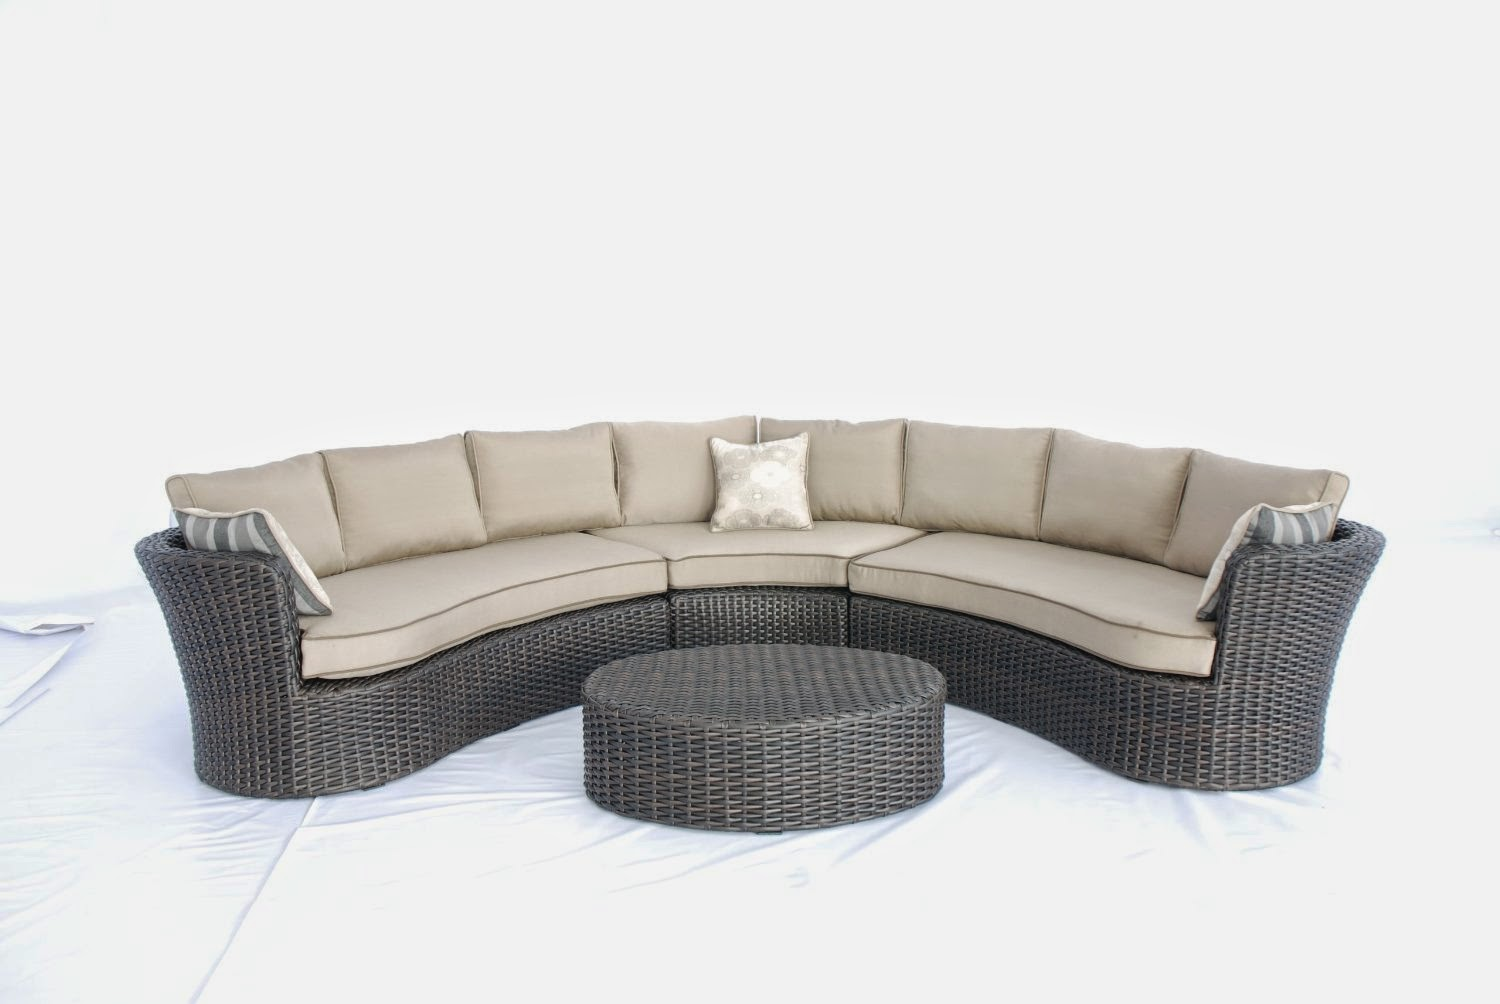 Curved sofa may 2014 for Antigua wicker chaise